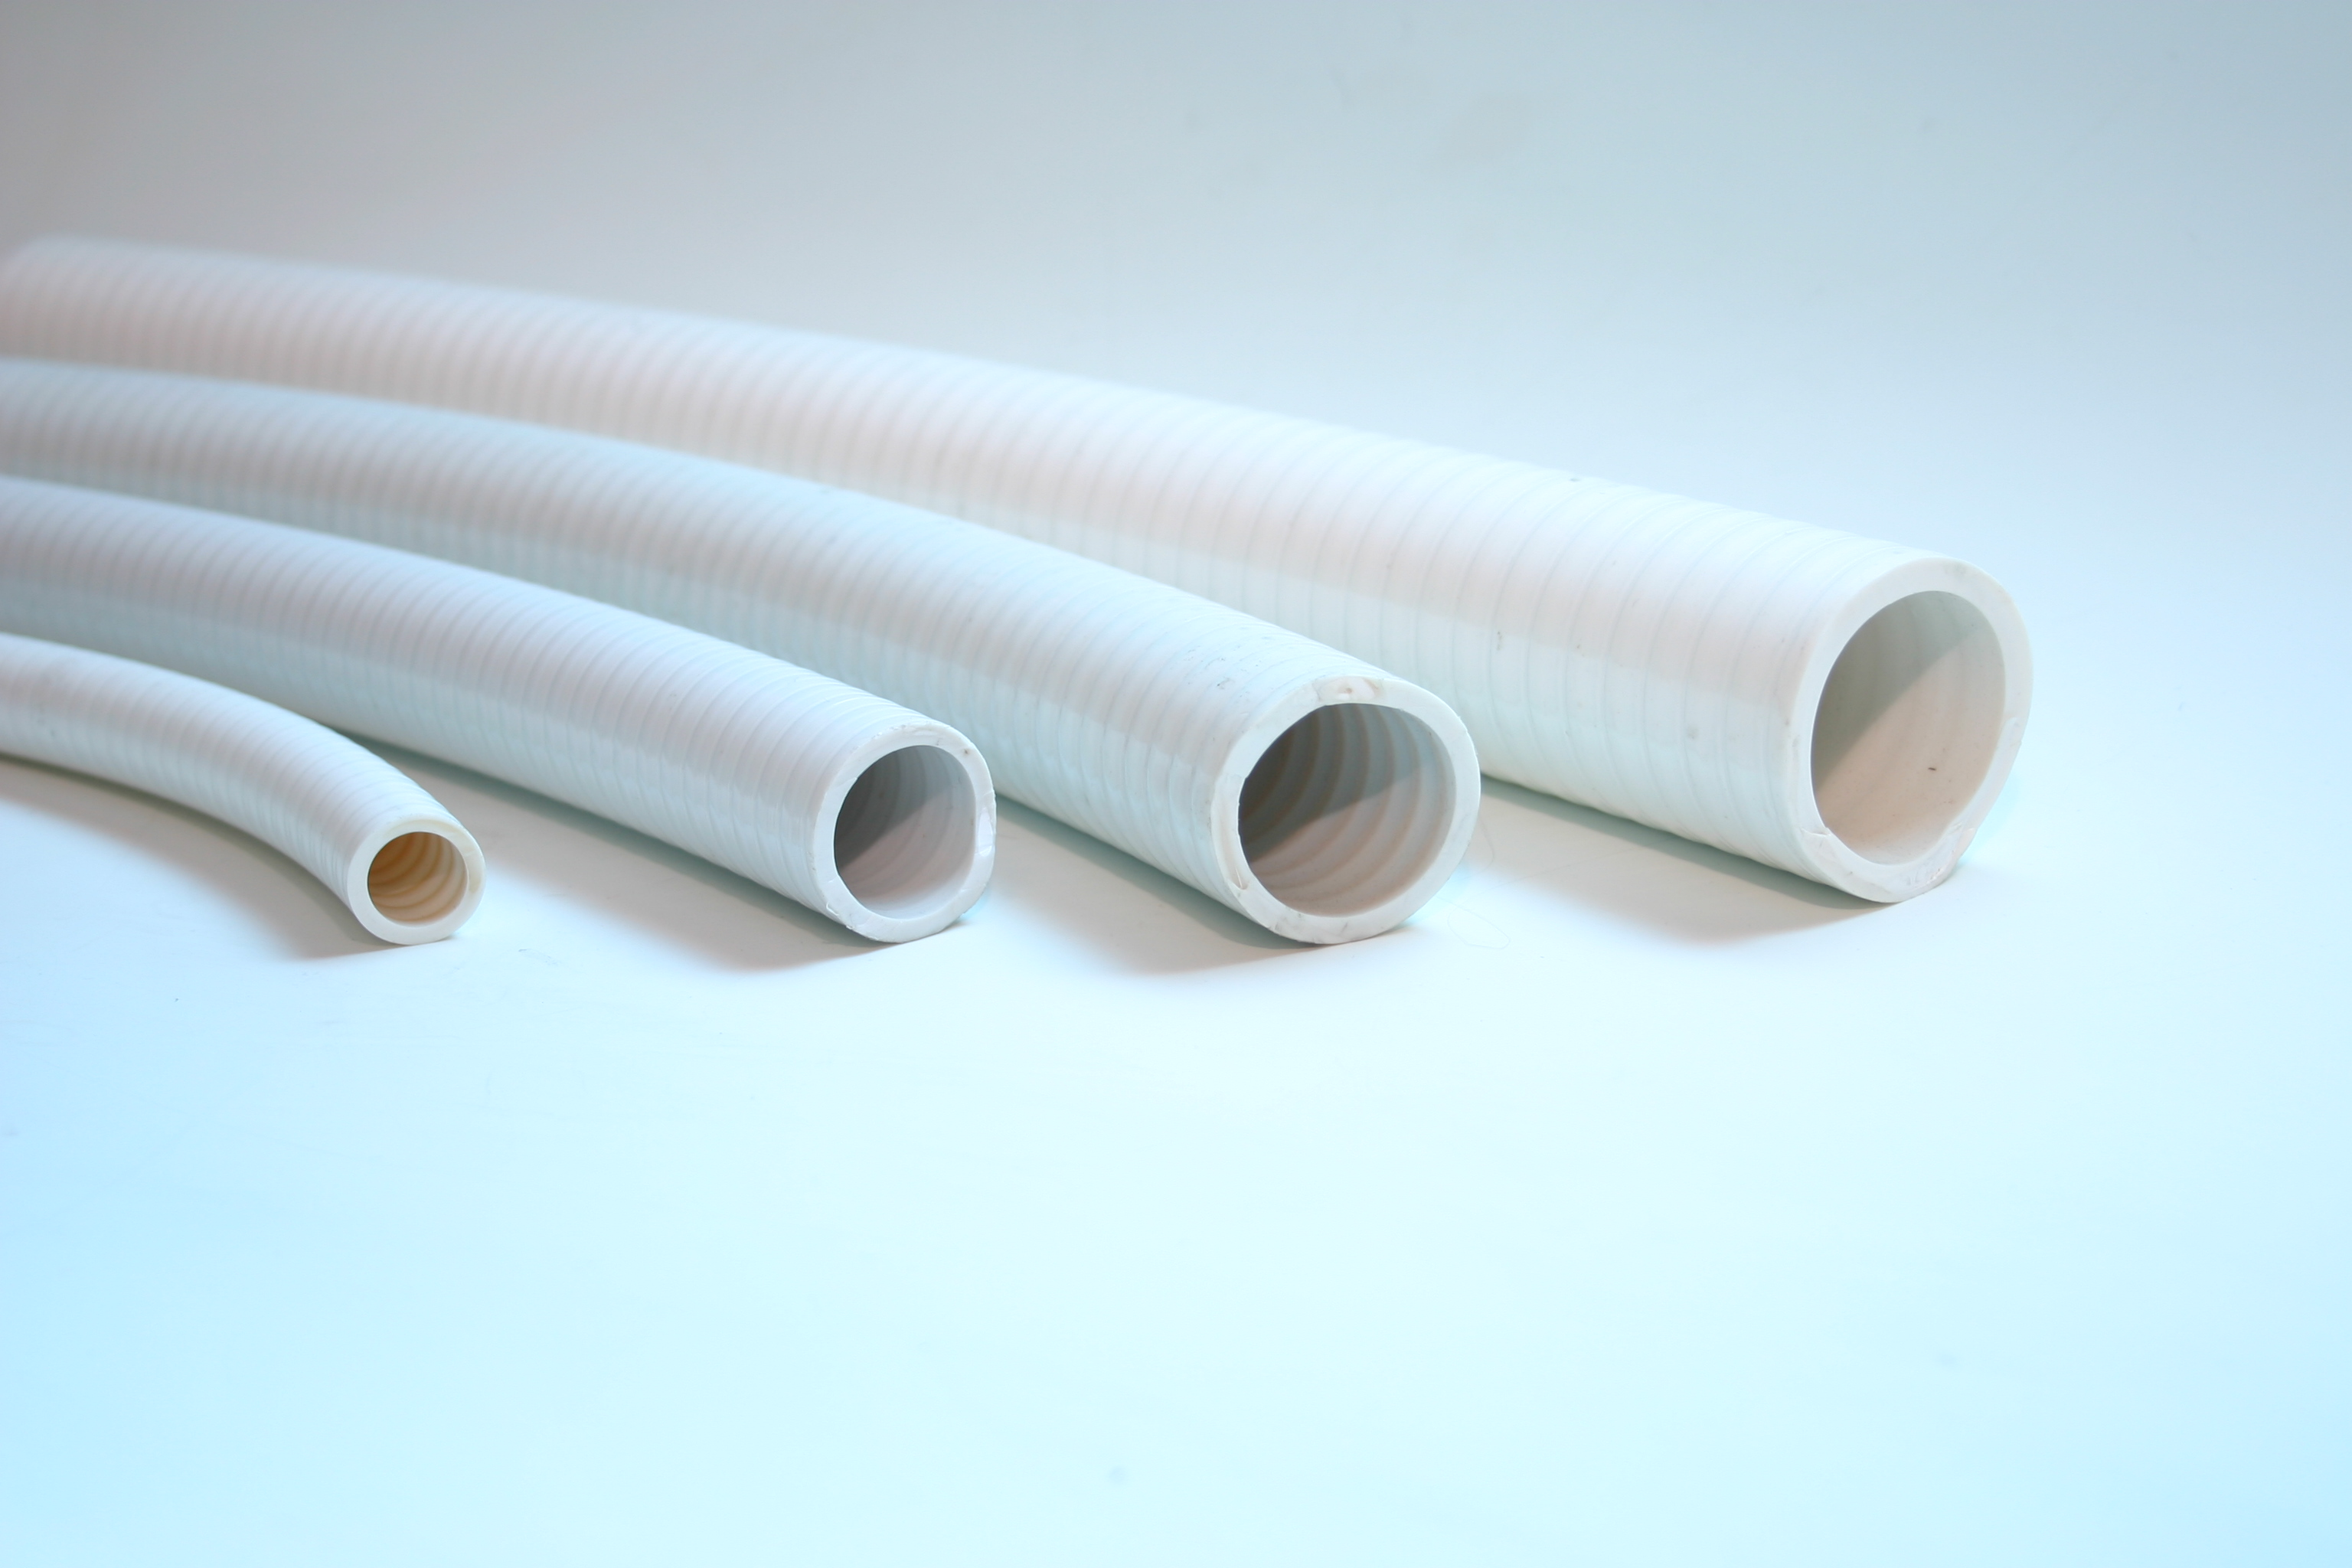 pipe 40 mm for whirlpool tub flexible hose pvc white reinforced. Black Bedroom Furniture Sets. Home Design Ideas